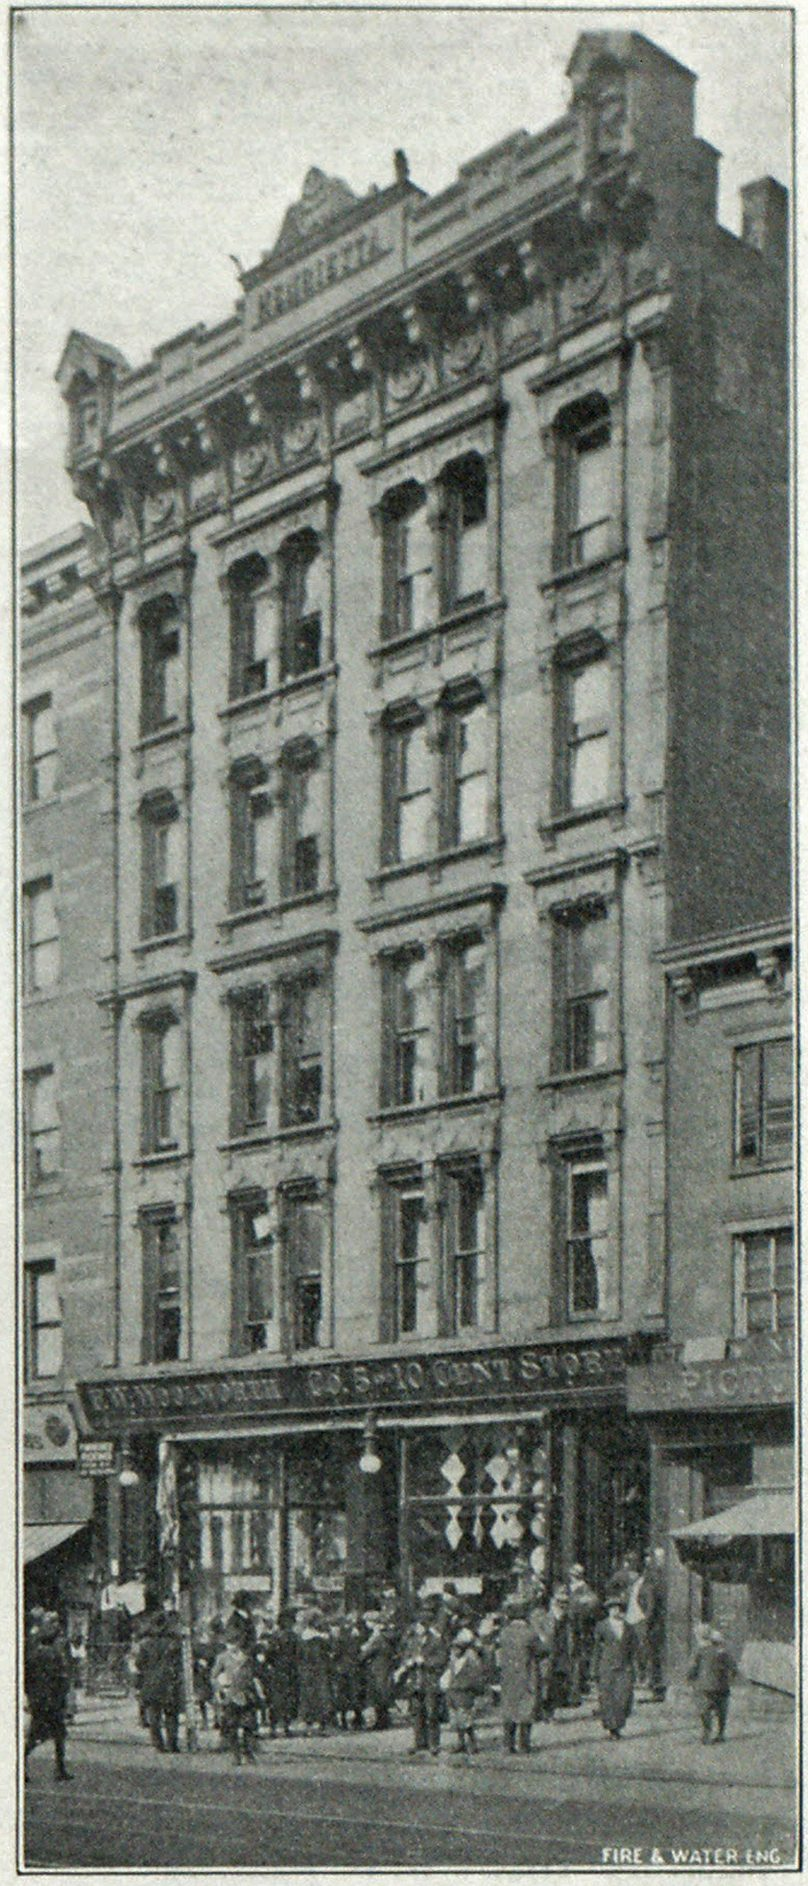 THE HENRIETTA ROOMING HOUSE, NEW YORK, IN WHICH ELEVEN LIVES WERE LOST.